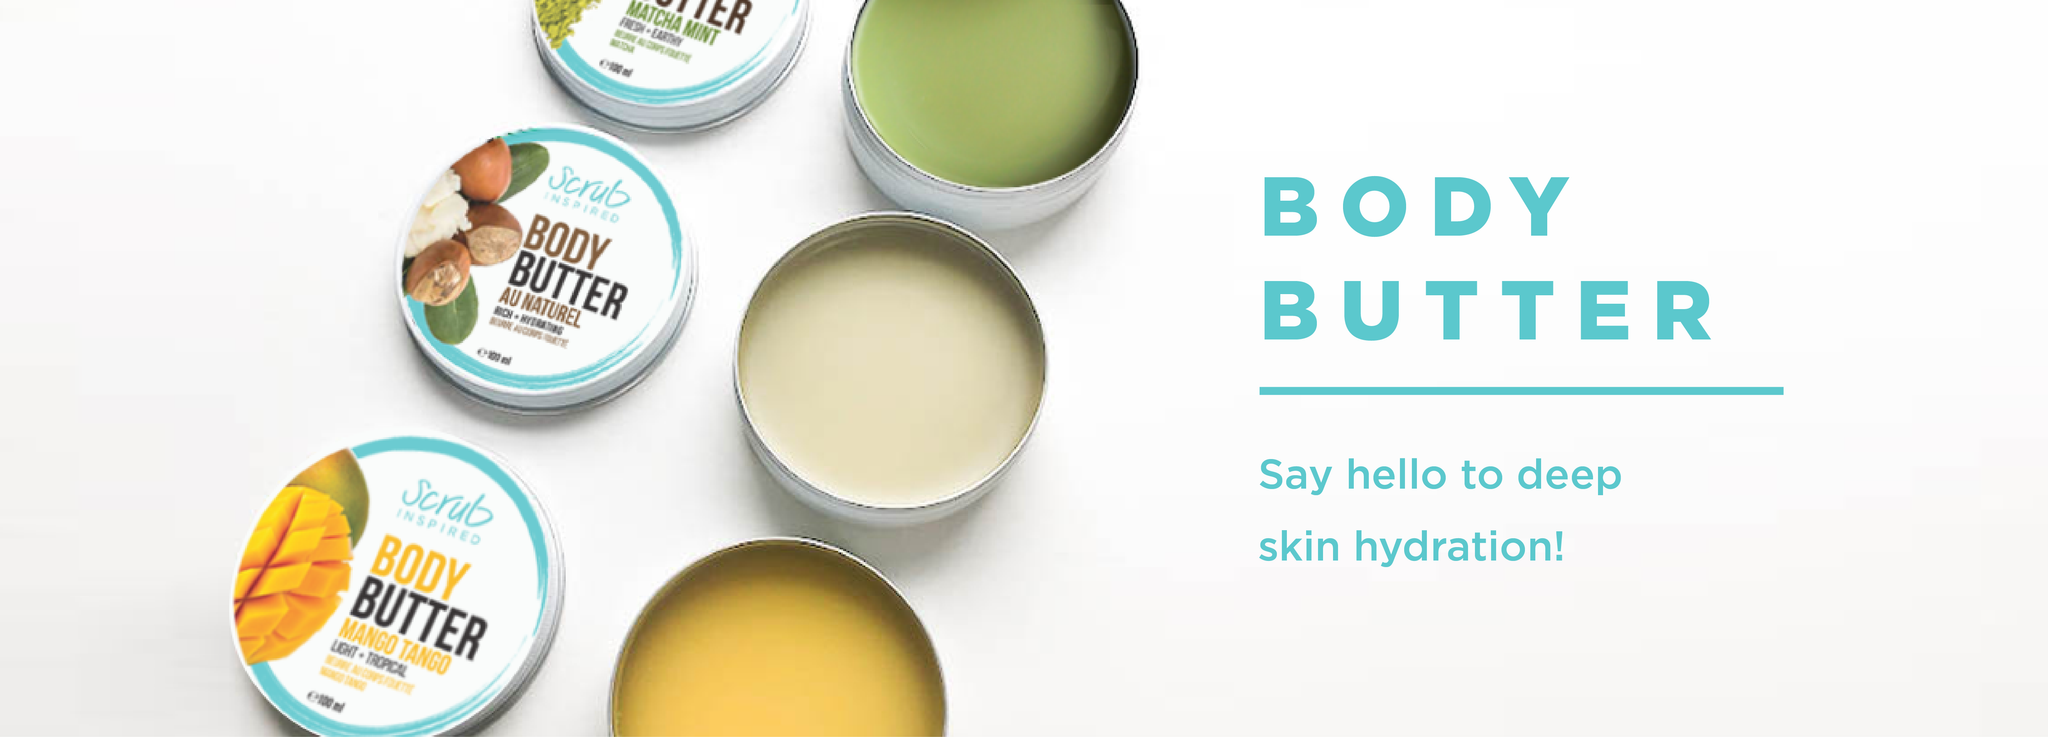 all natural body butter by scrub inspired that will deeply hydrate your skin